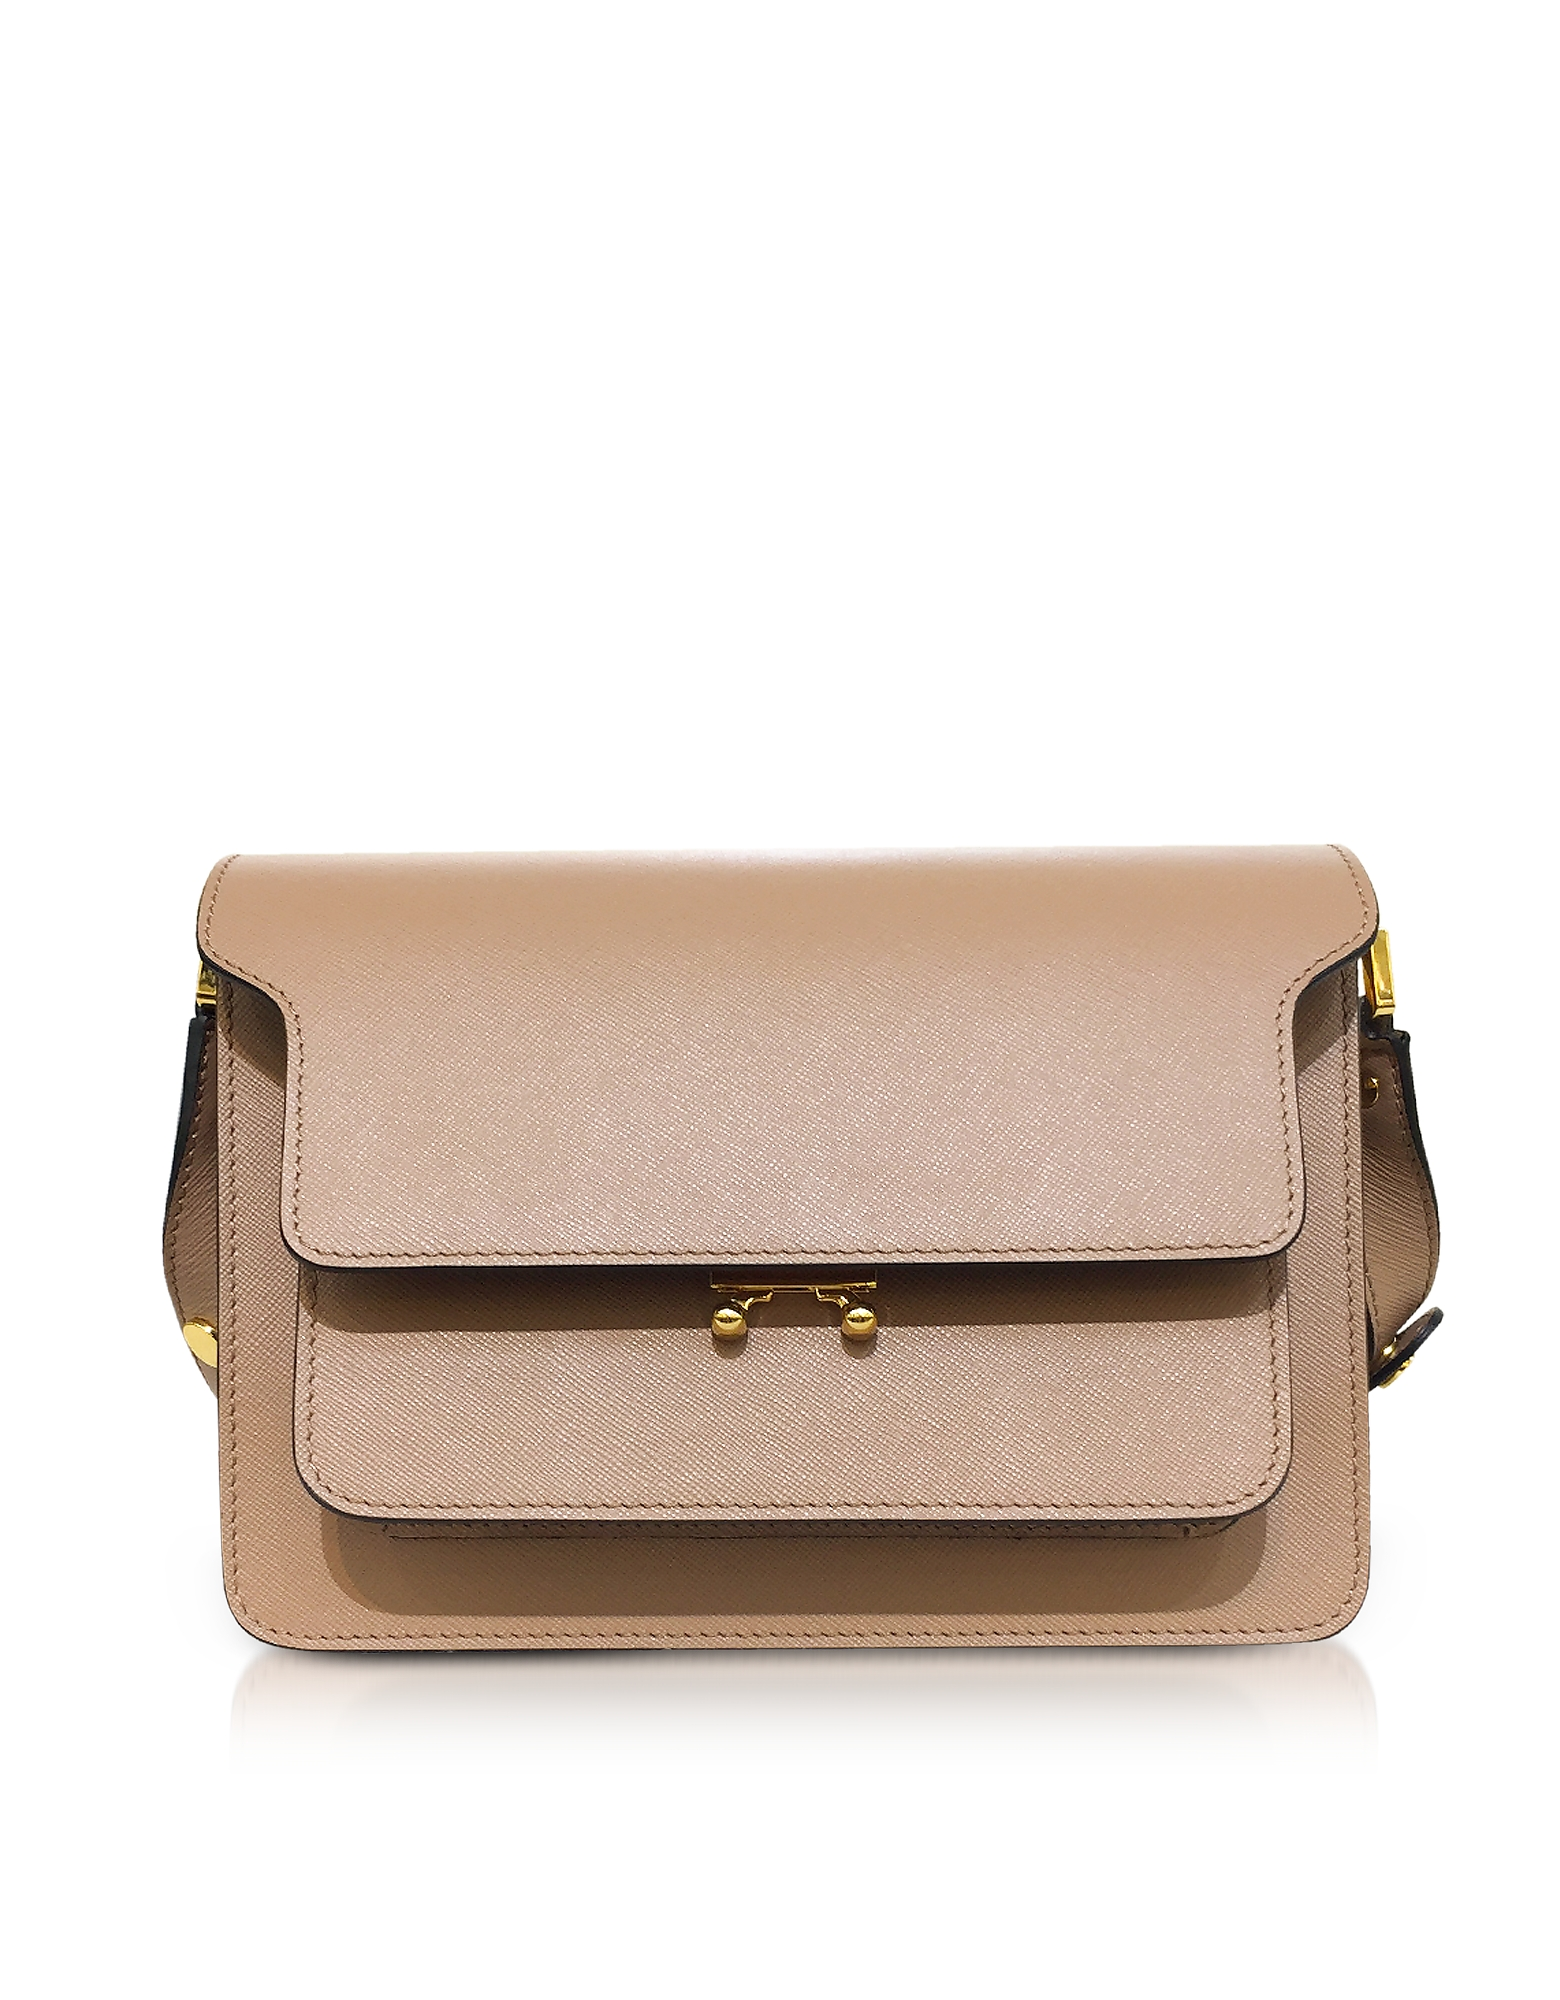 Marni Designer Handbags, Saffiano Leather Trunk Shoulder Bag